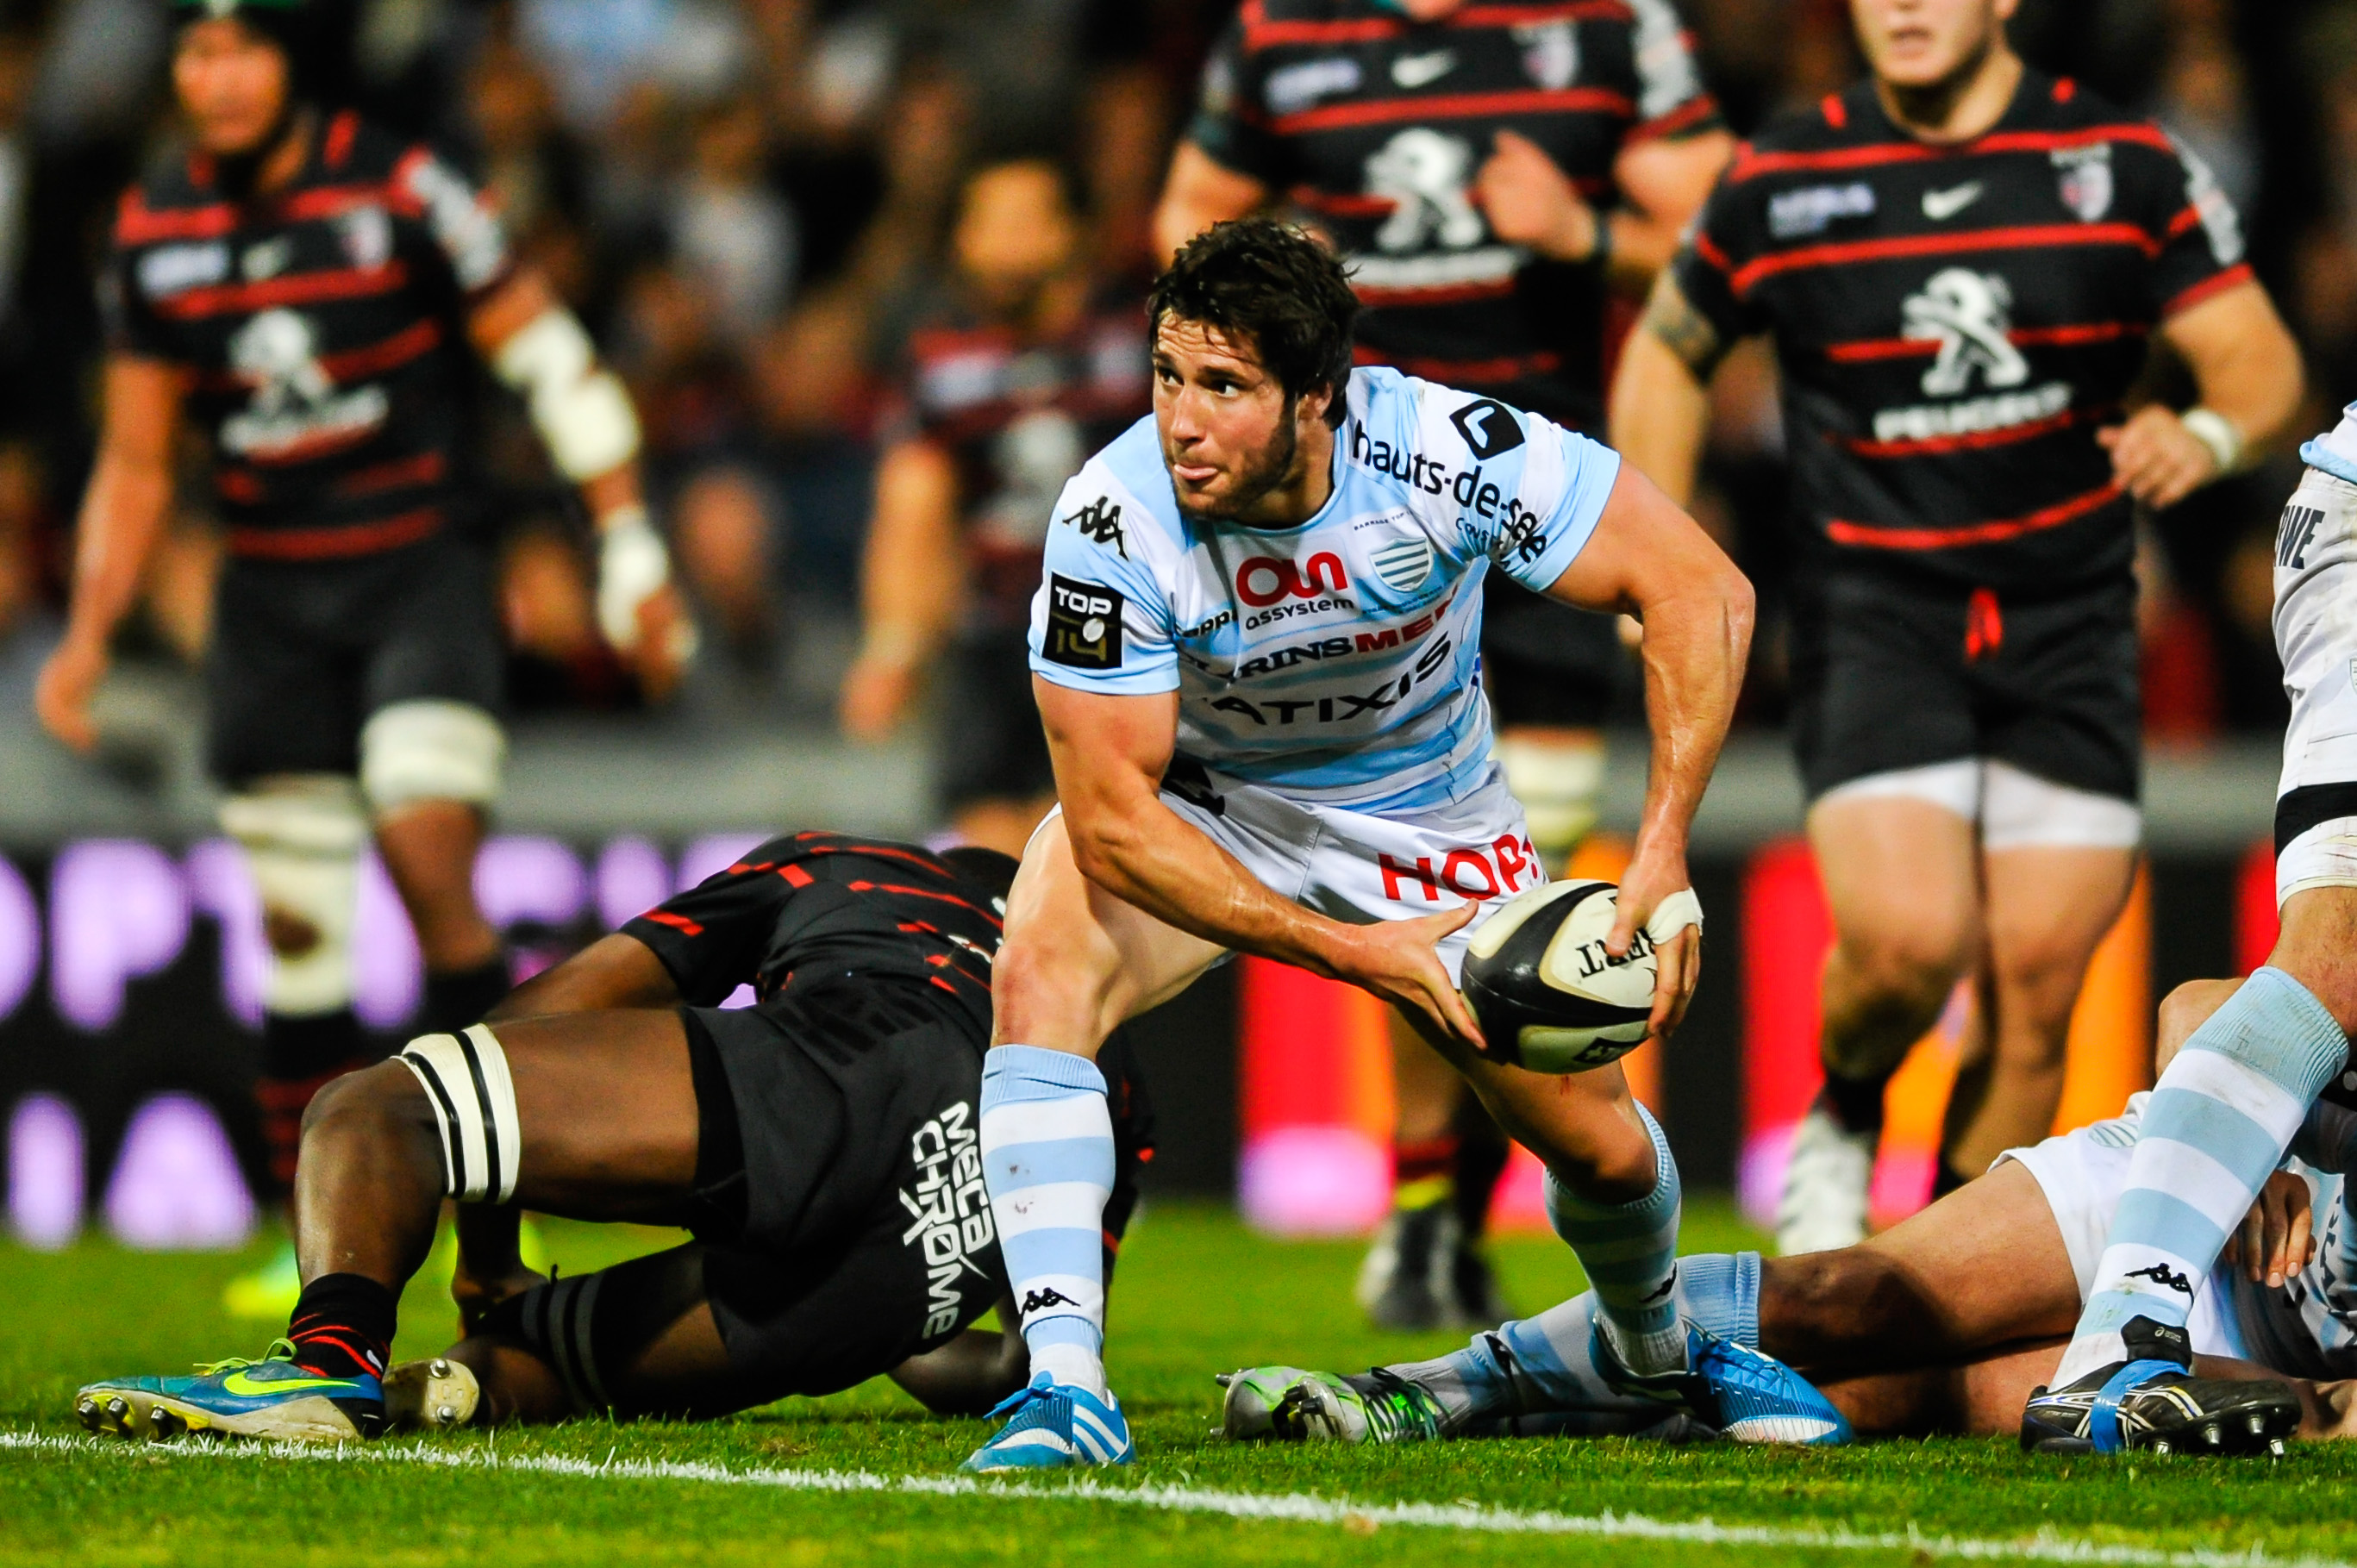 rugby top 14 racing metro toulouse en direct